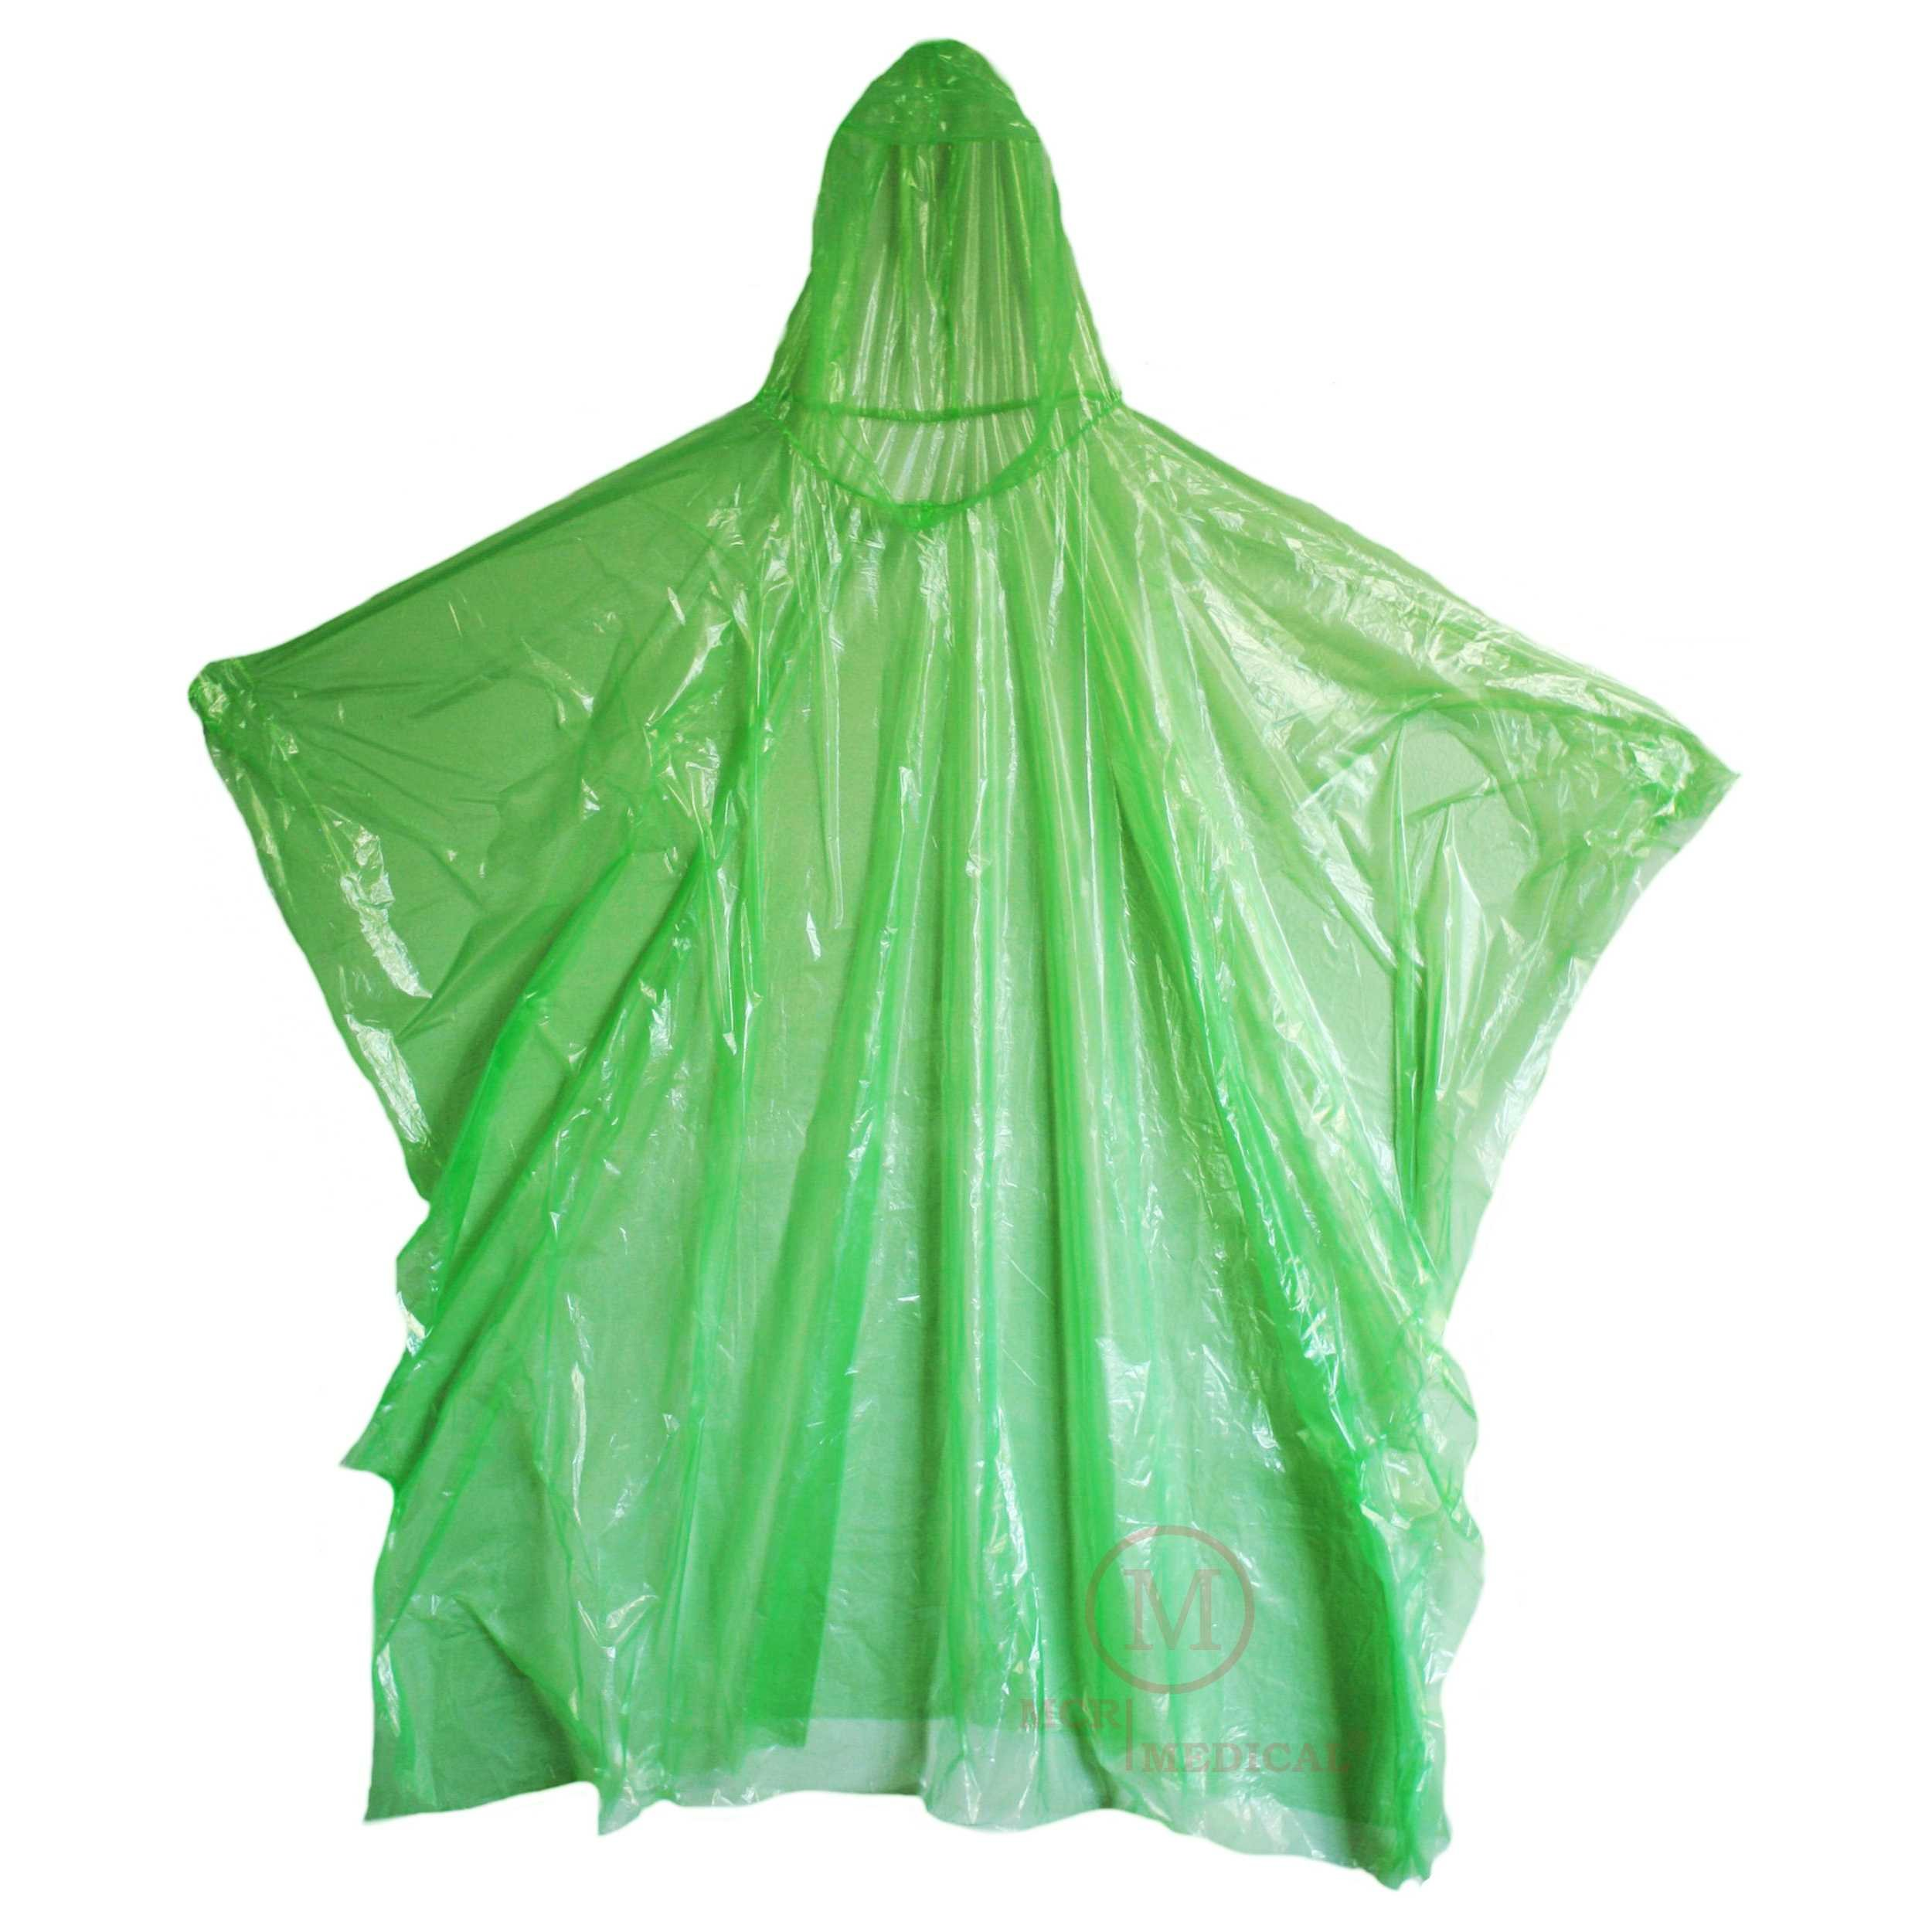 MCR Medical Disposable Rain Ponchos with Hood, Green (Pack of 50) … by MCR Medical